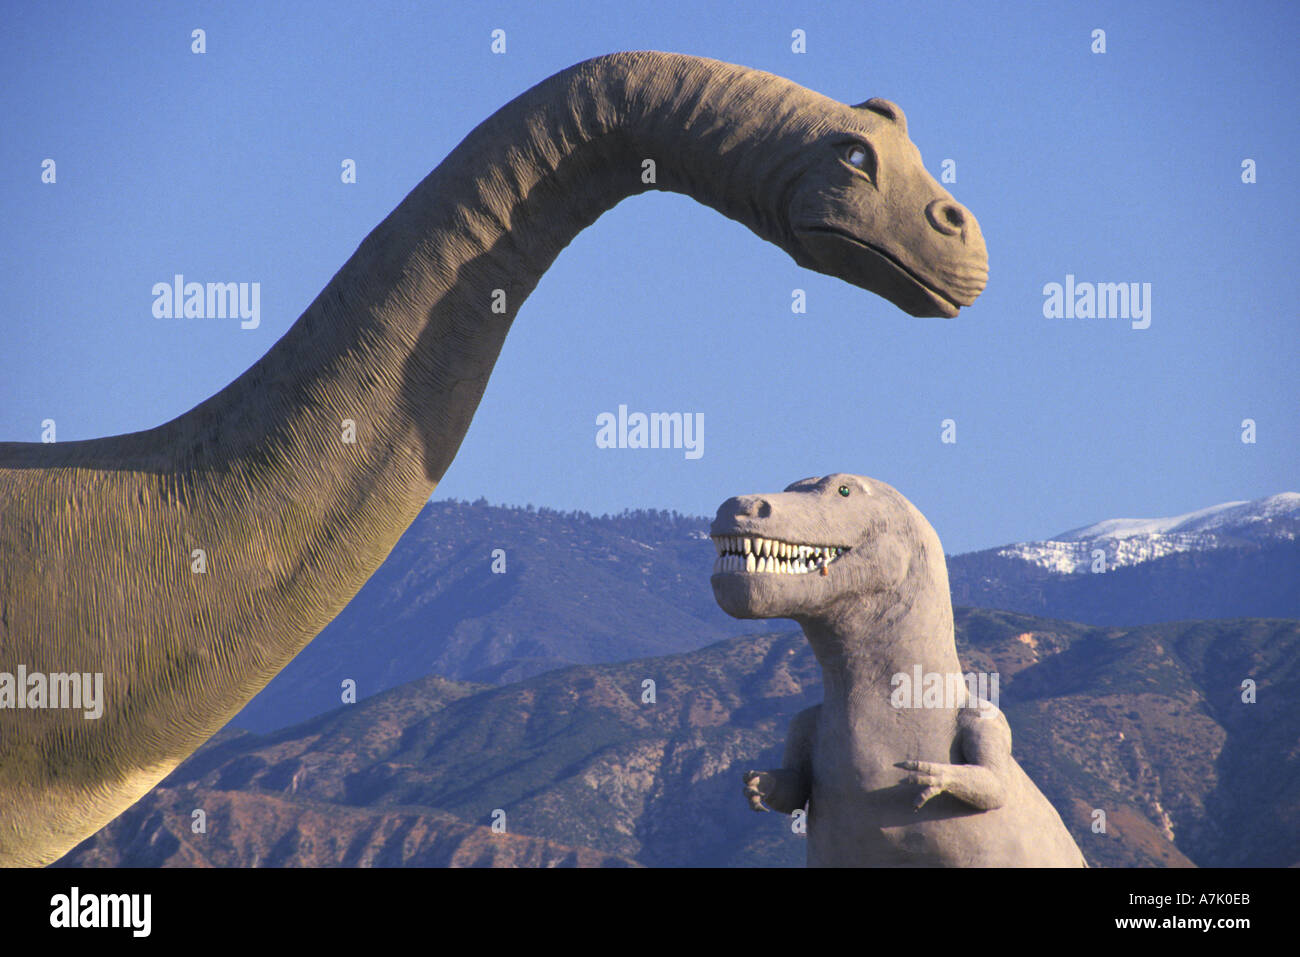 dinosaurs tourist attraction at Banning California - Stock Image